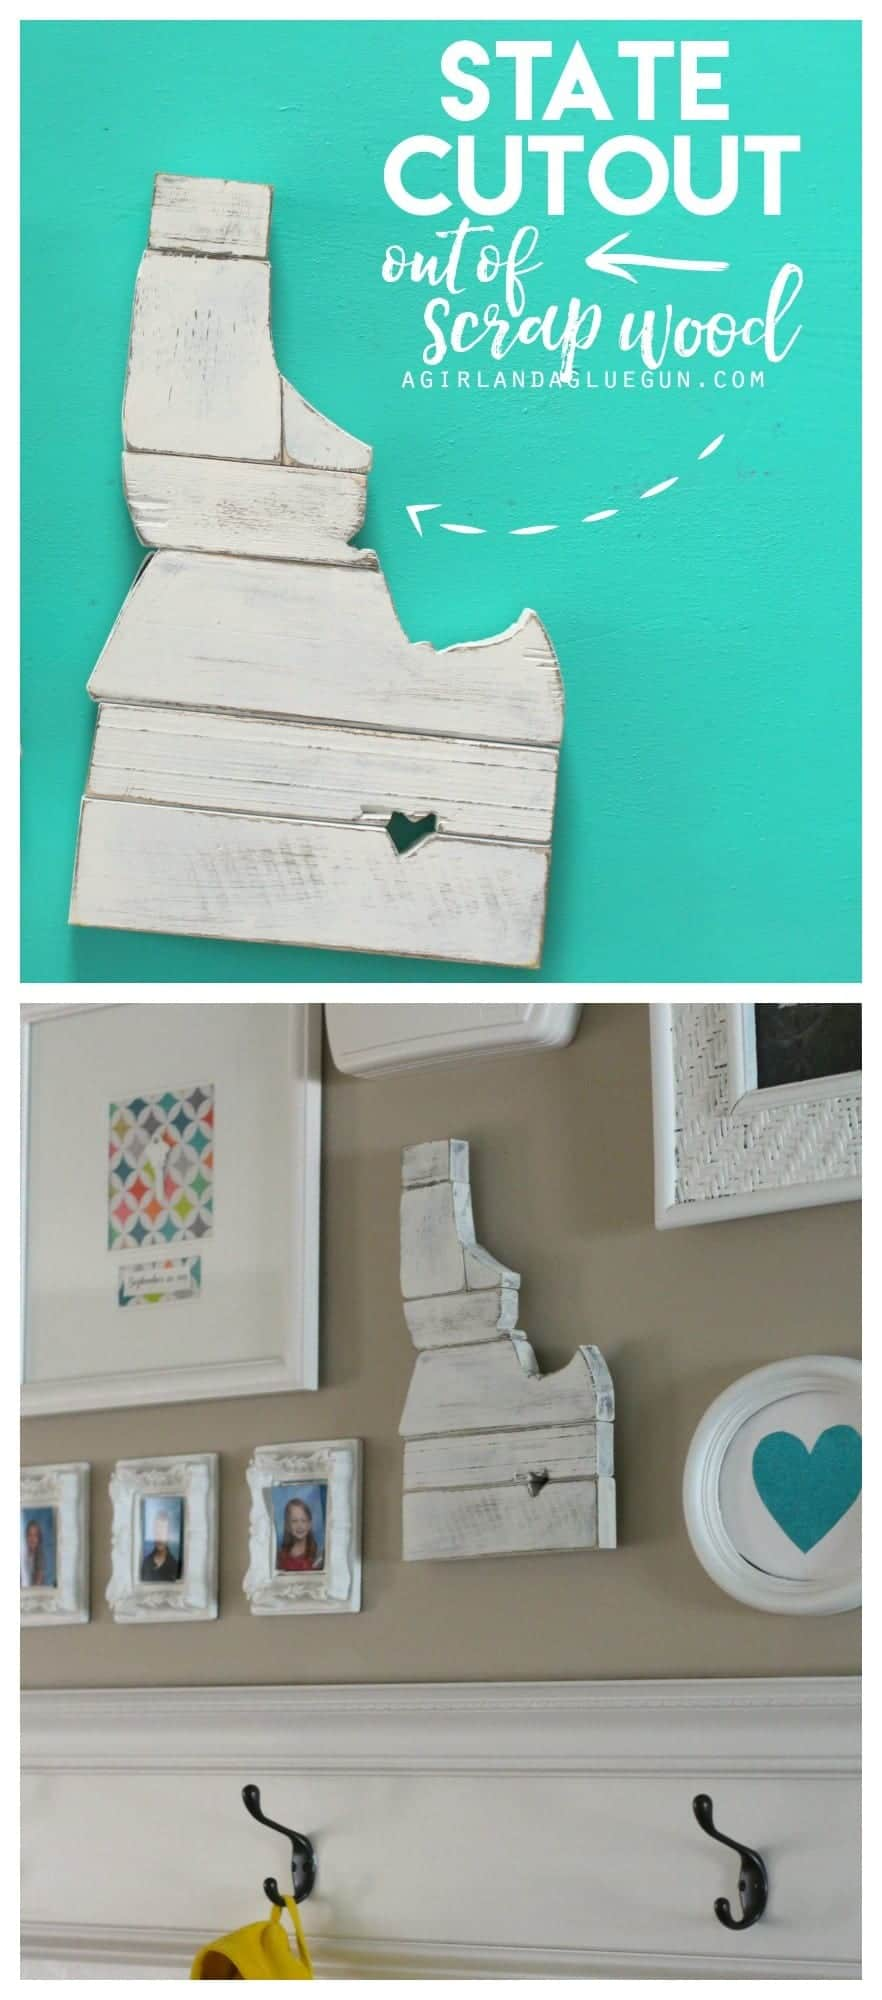 easy and fun girls night craft--state cutout of of scrap wood